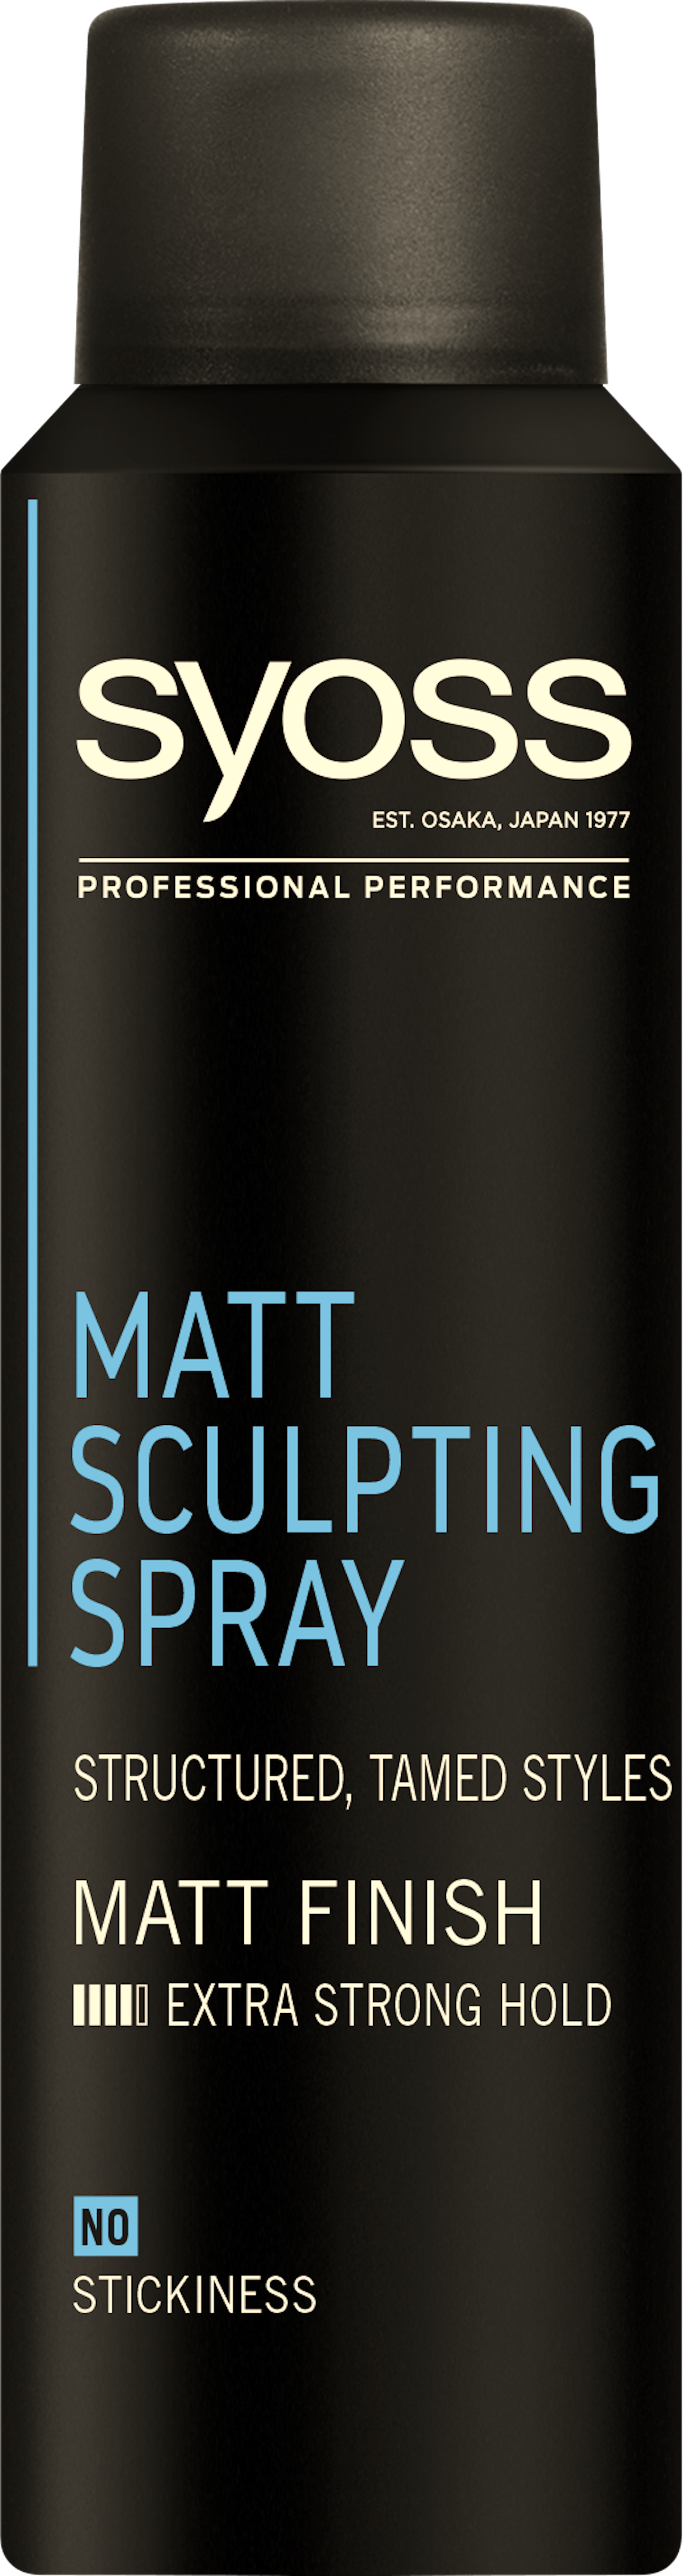 Спрей для волосся Syoss Matt Sculpting